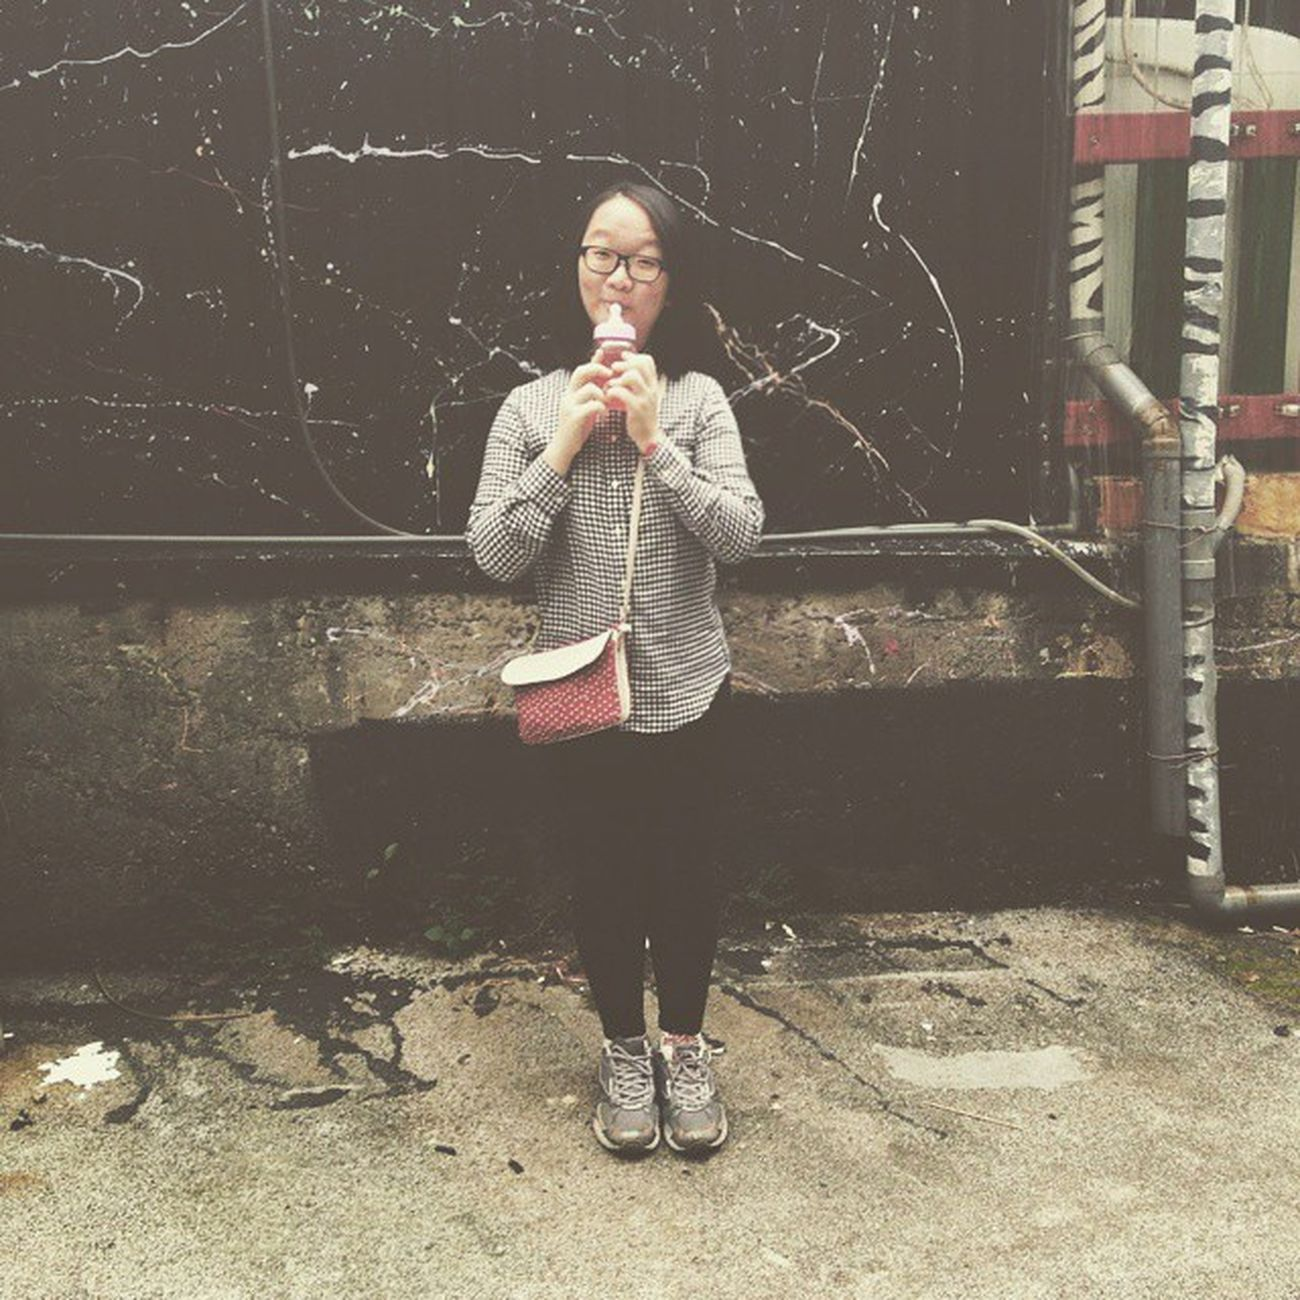 Vscocam Ootd Uniqlo Checkers Blackandwhite Shirt Black Jeggings Sneakers Vintage Bag Streetshot Milkchoc Icecream